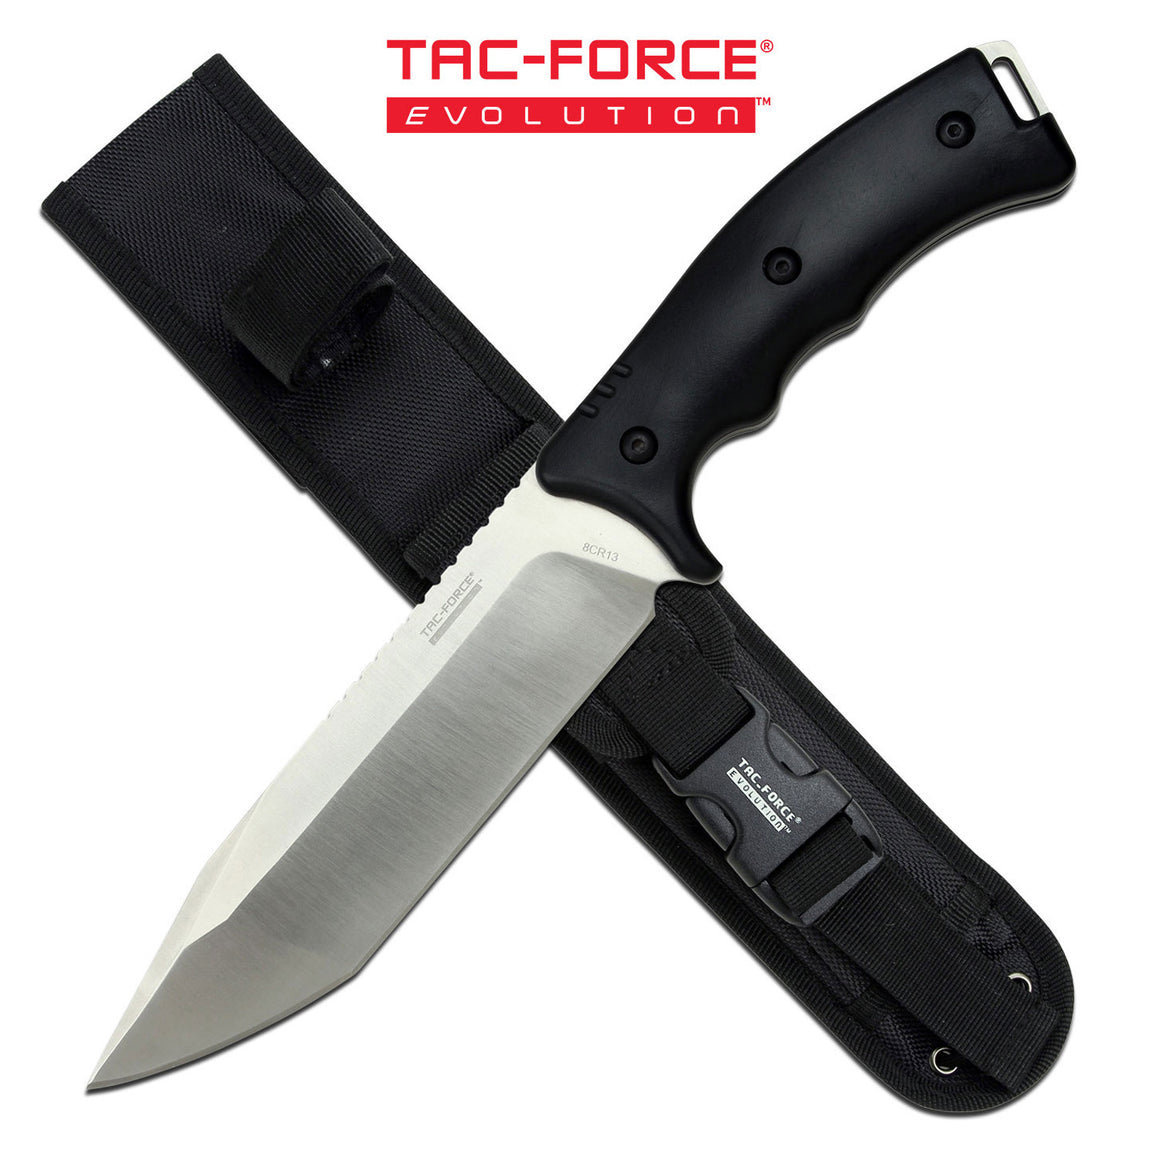 Tac-Force Evolution TFE-FIX004T-BK Fixed Blade Knife